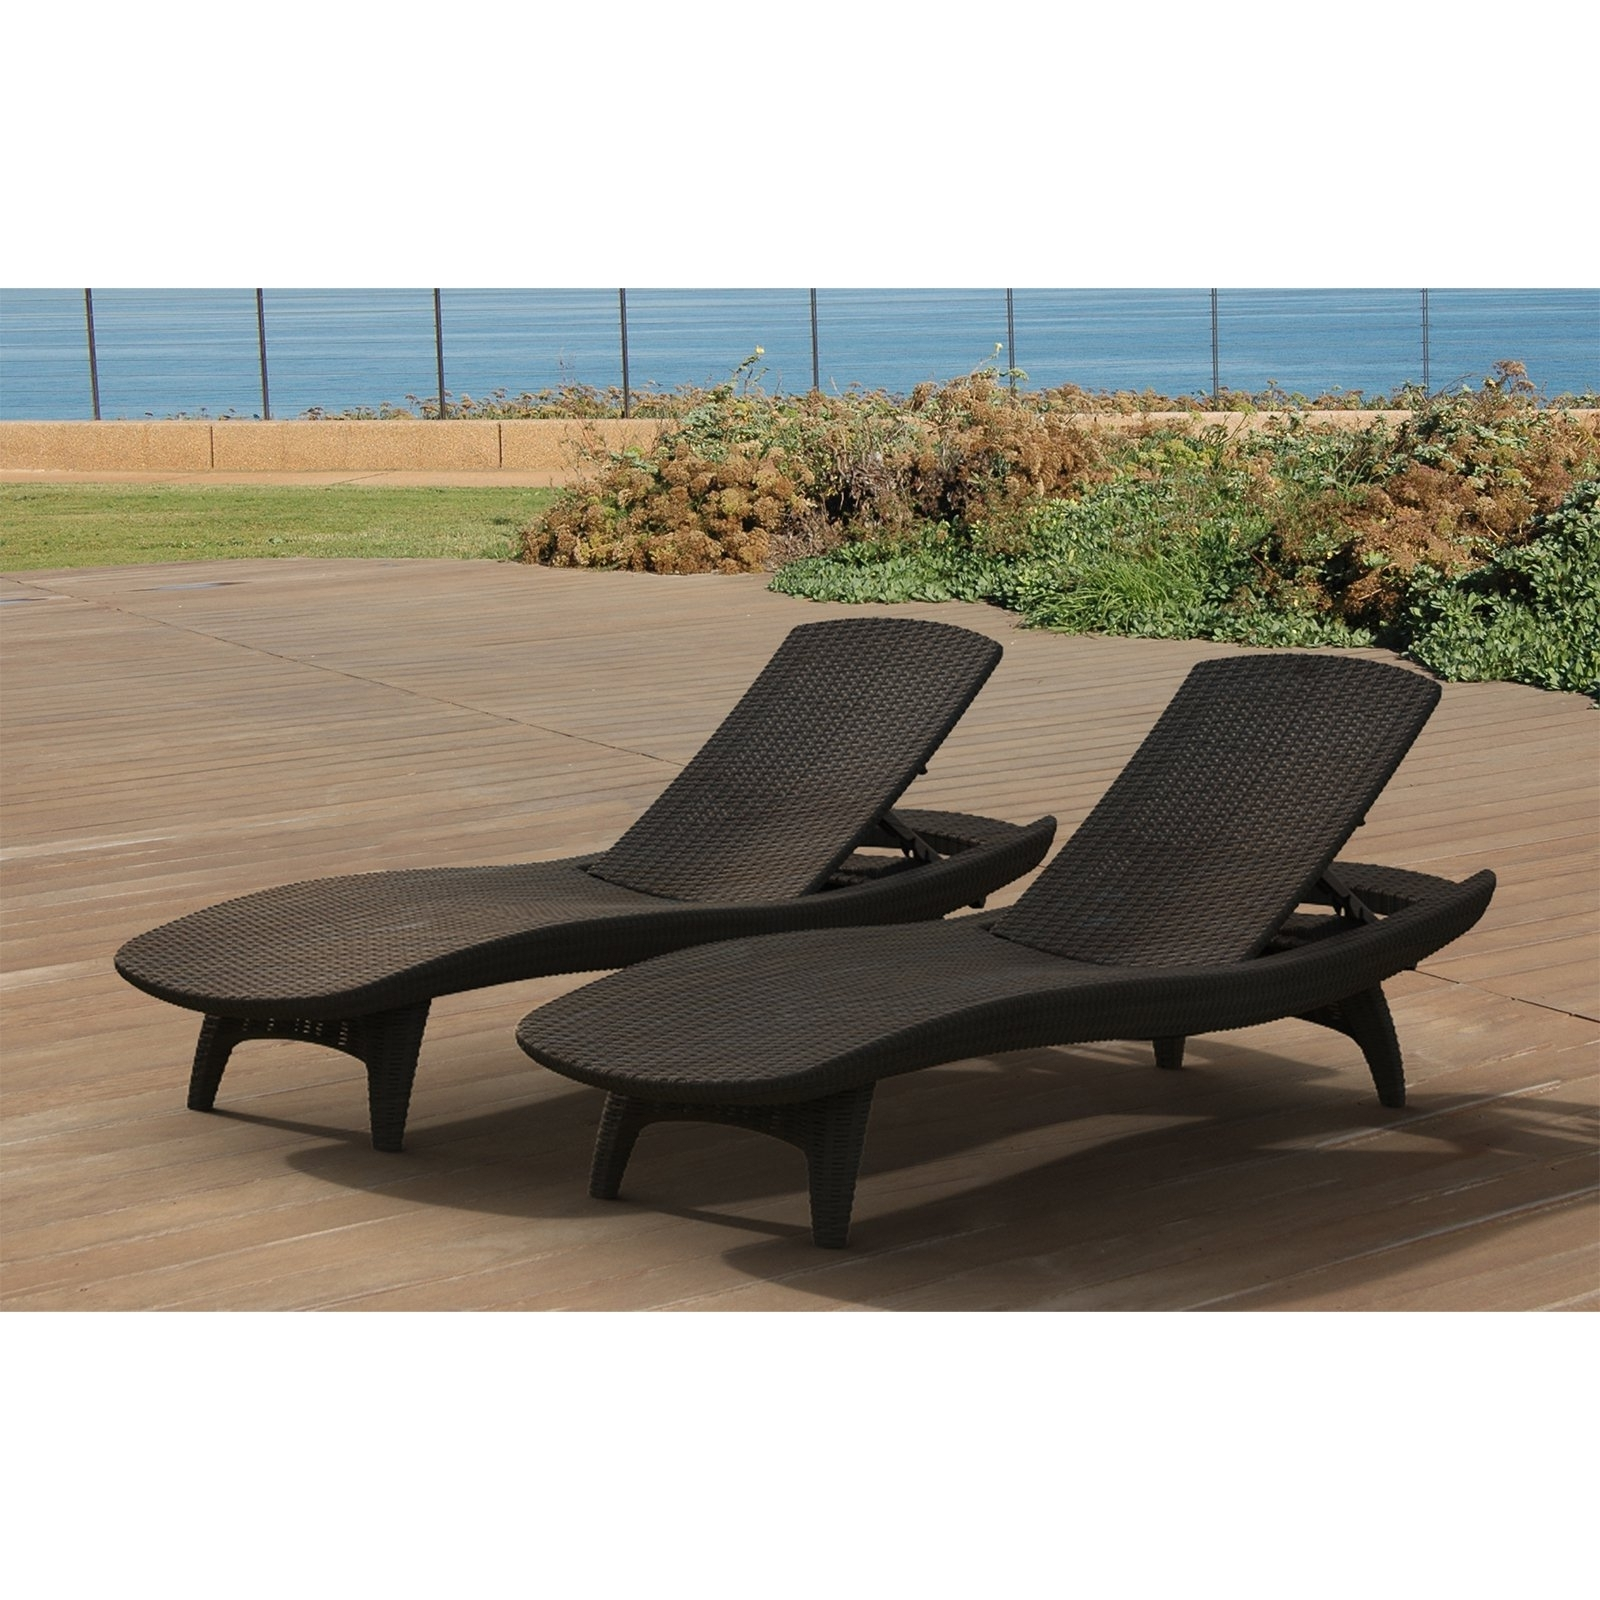 Hotel Chaise Lounge Chairs Within Preferred Hotel Chaise Lounge Chairs • Lounge Chairs Ideas (View 5 of 15)